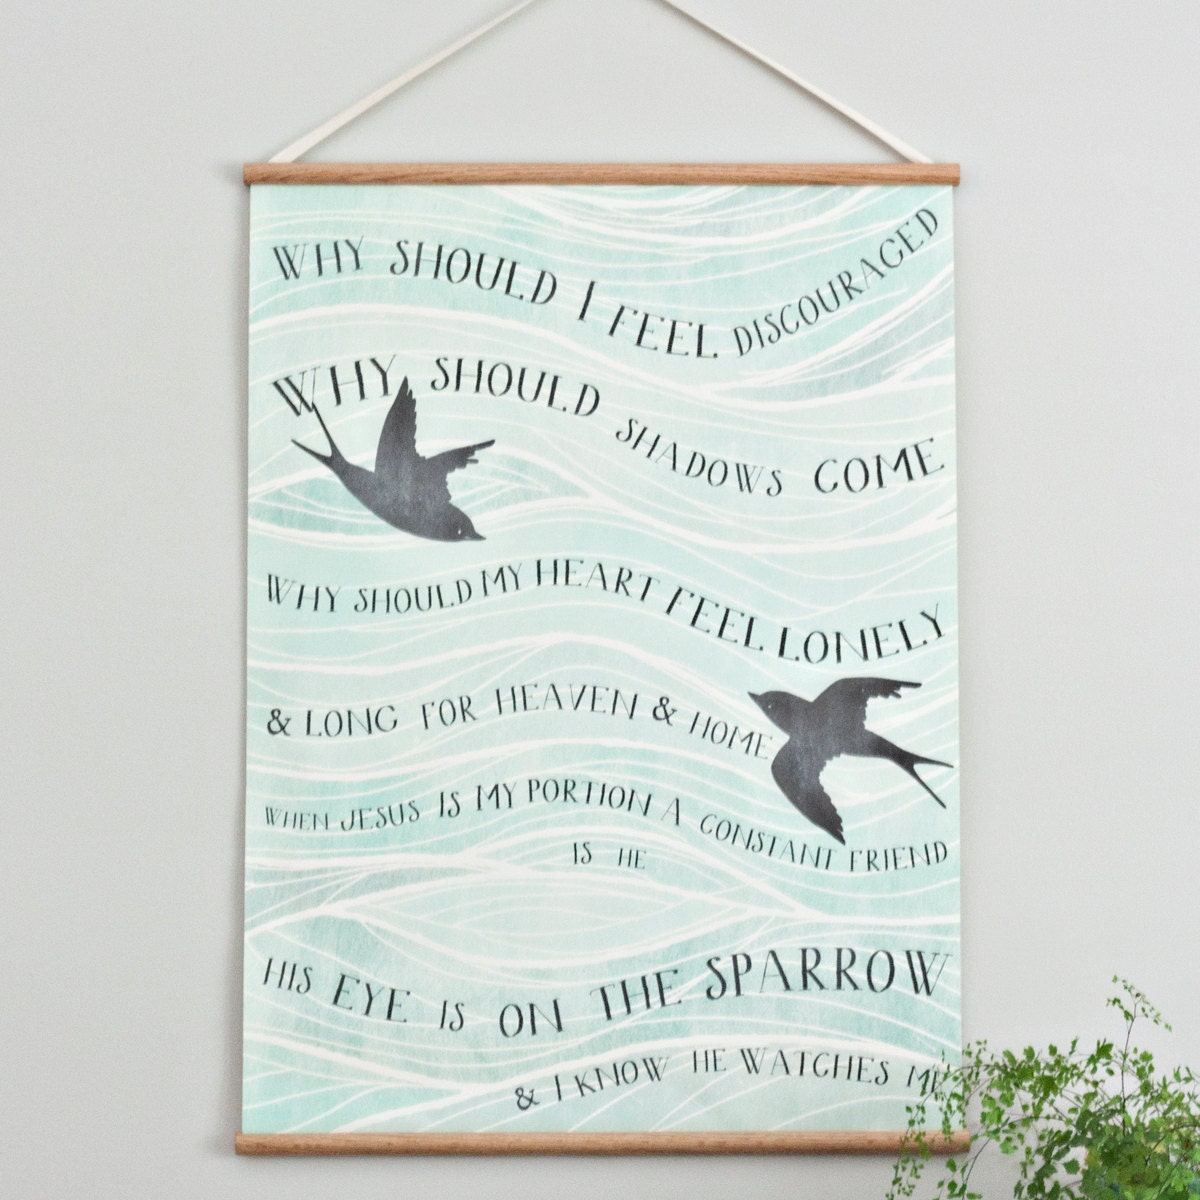 Sparrow - Large canvas wall hanging